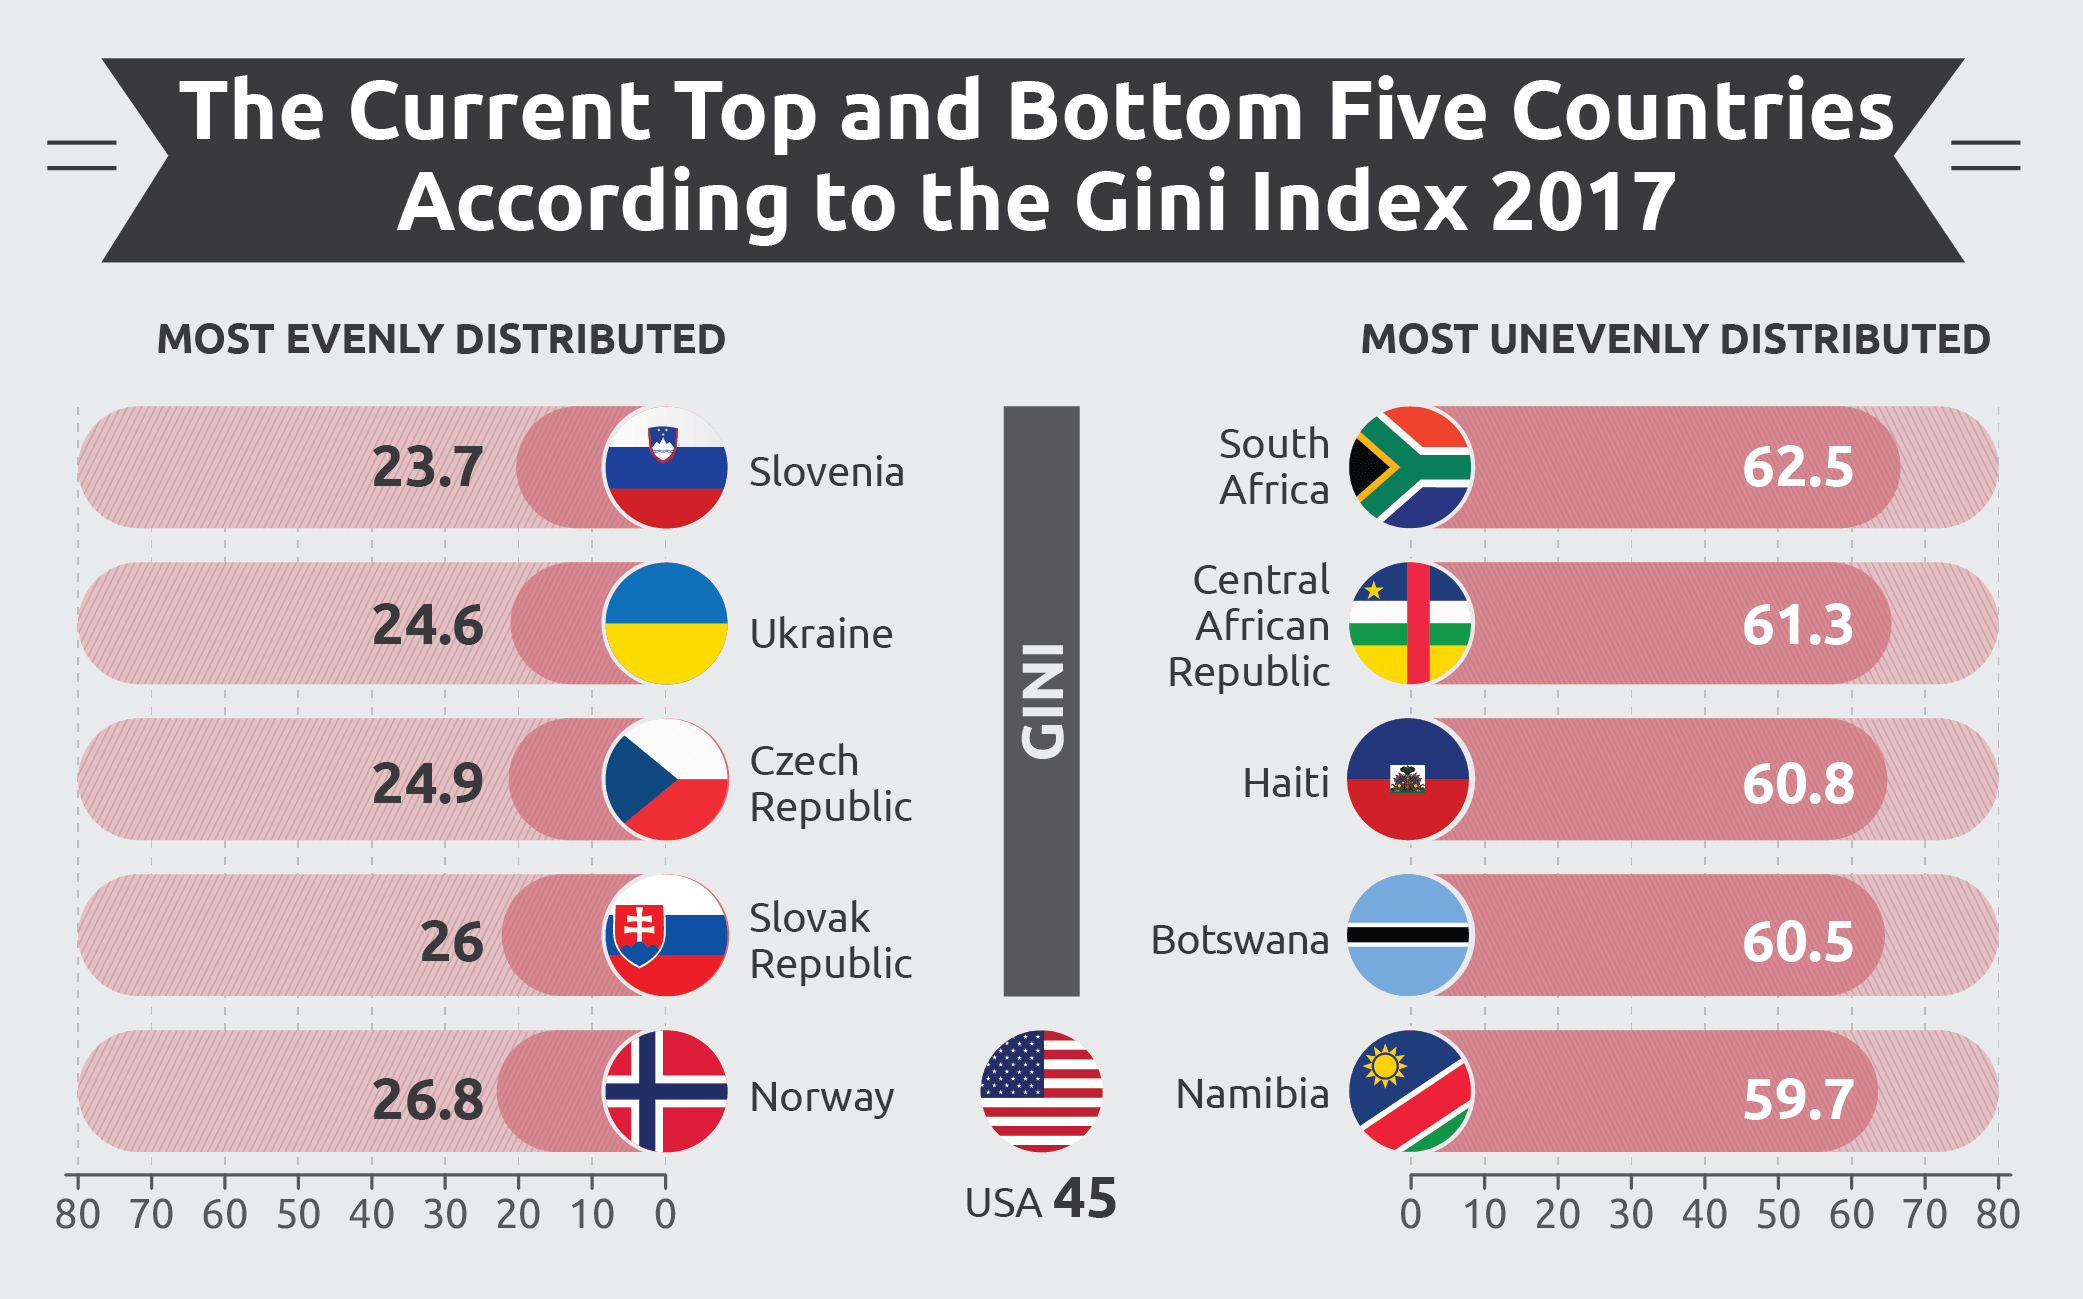 The Current Top and Bottom Five Countries According to the Gini Index 2017